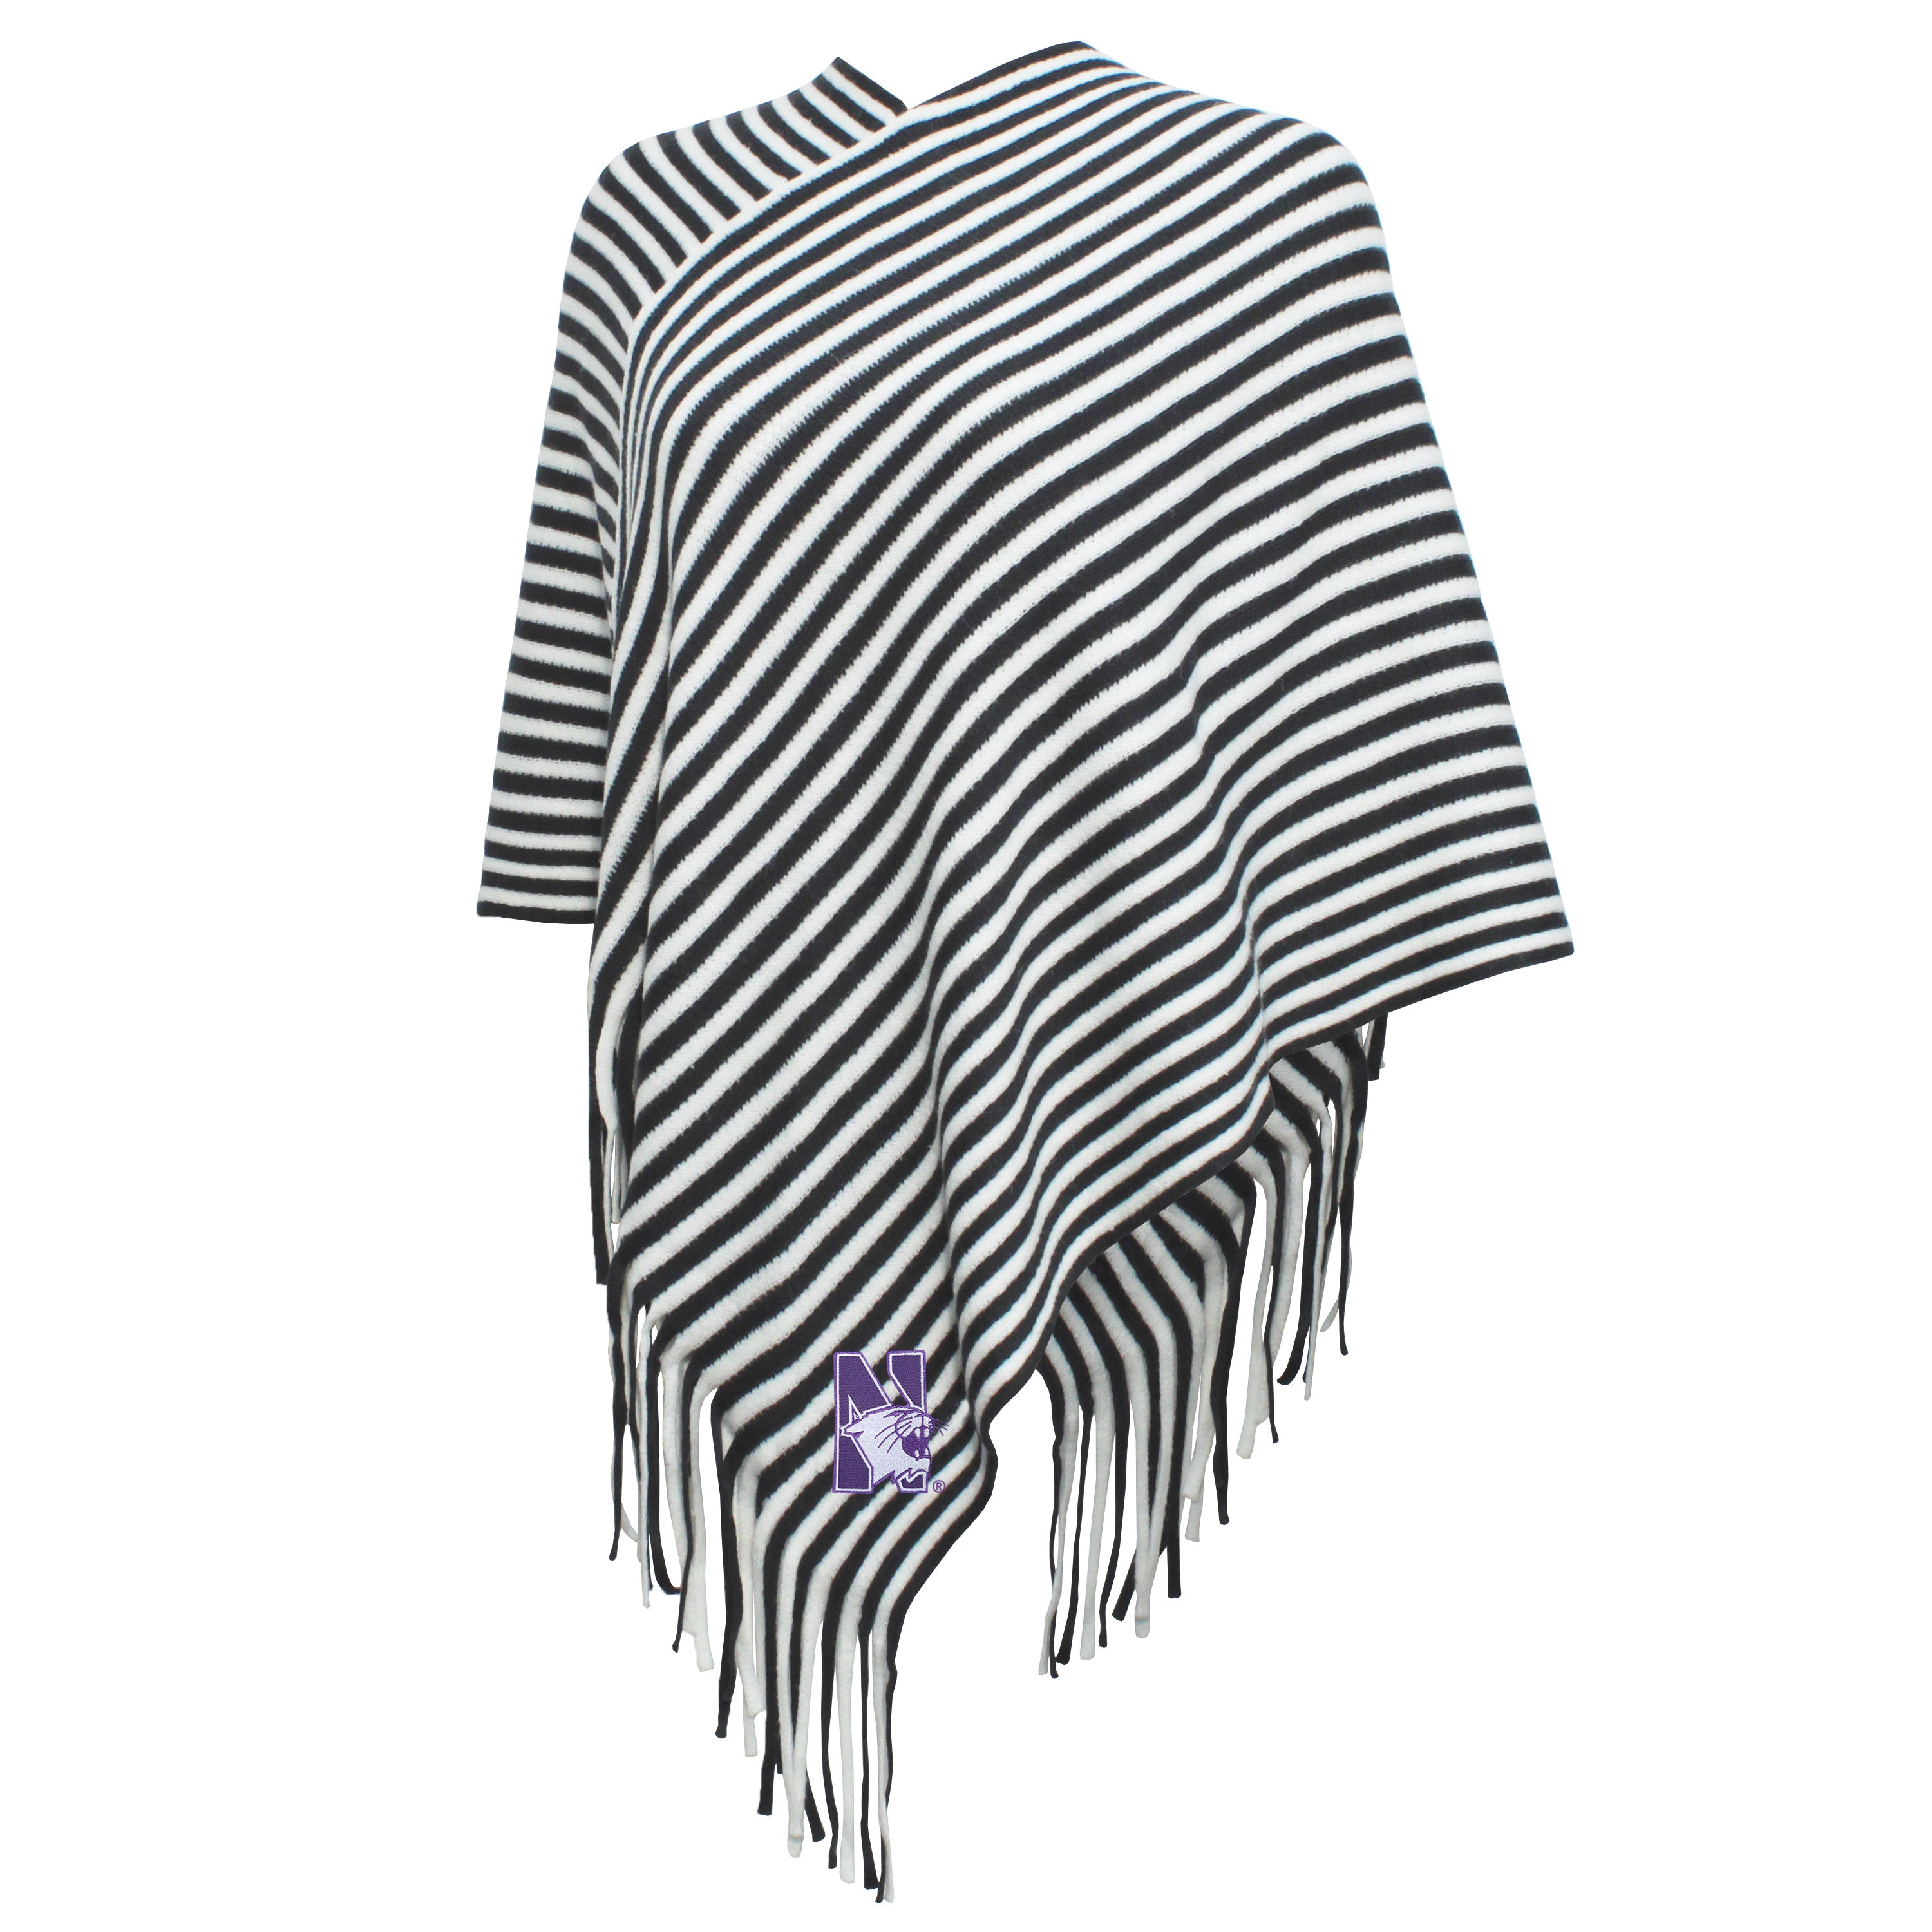 Campus Specialties Northwestern Women's Carbon Poncho